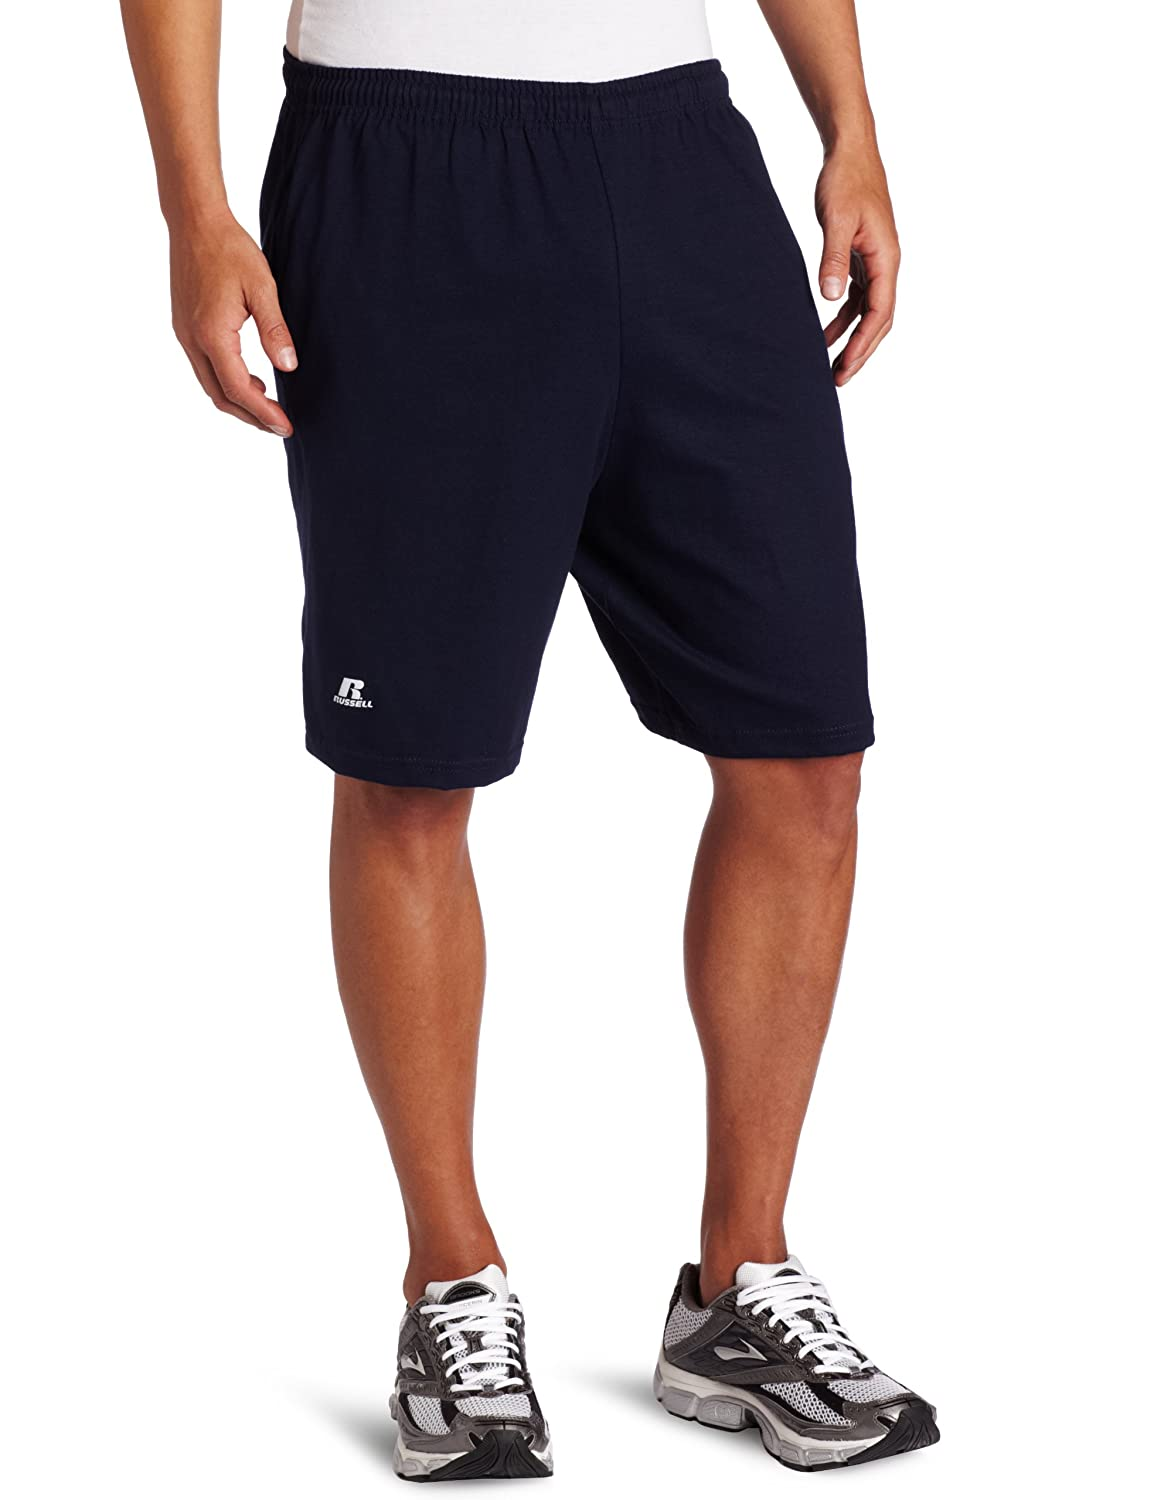 6cc644773b Russell Athletic Men's Cotton Performance Baseline Short at Amazon Men's  Clothing store: Mens Exercise Shorts